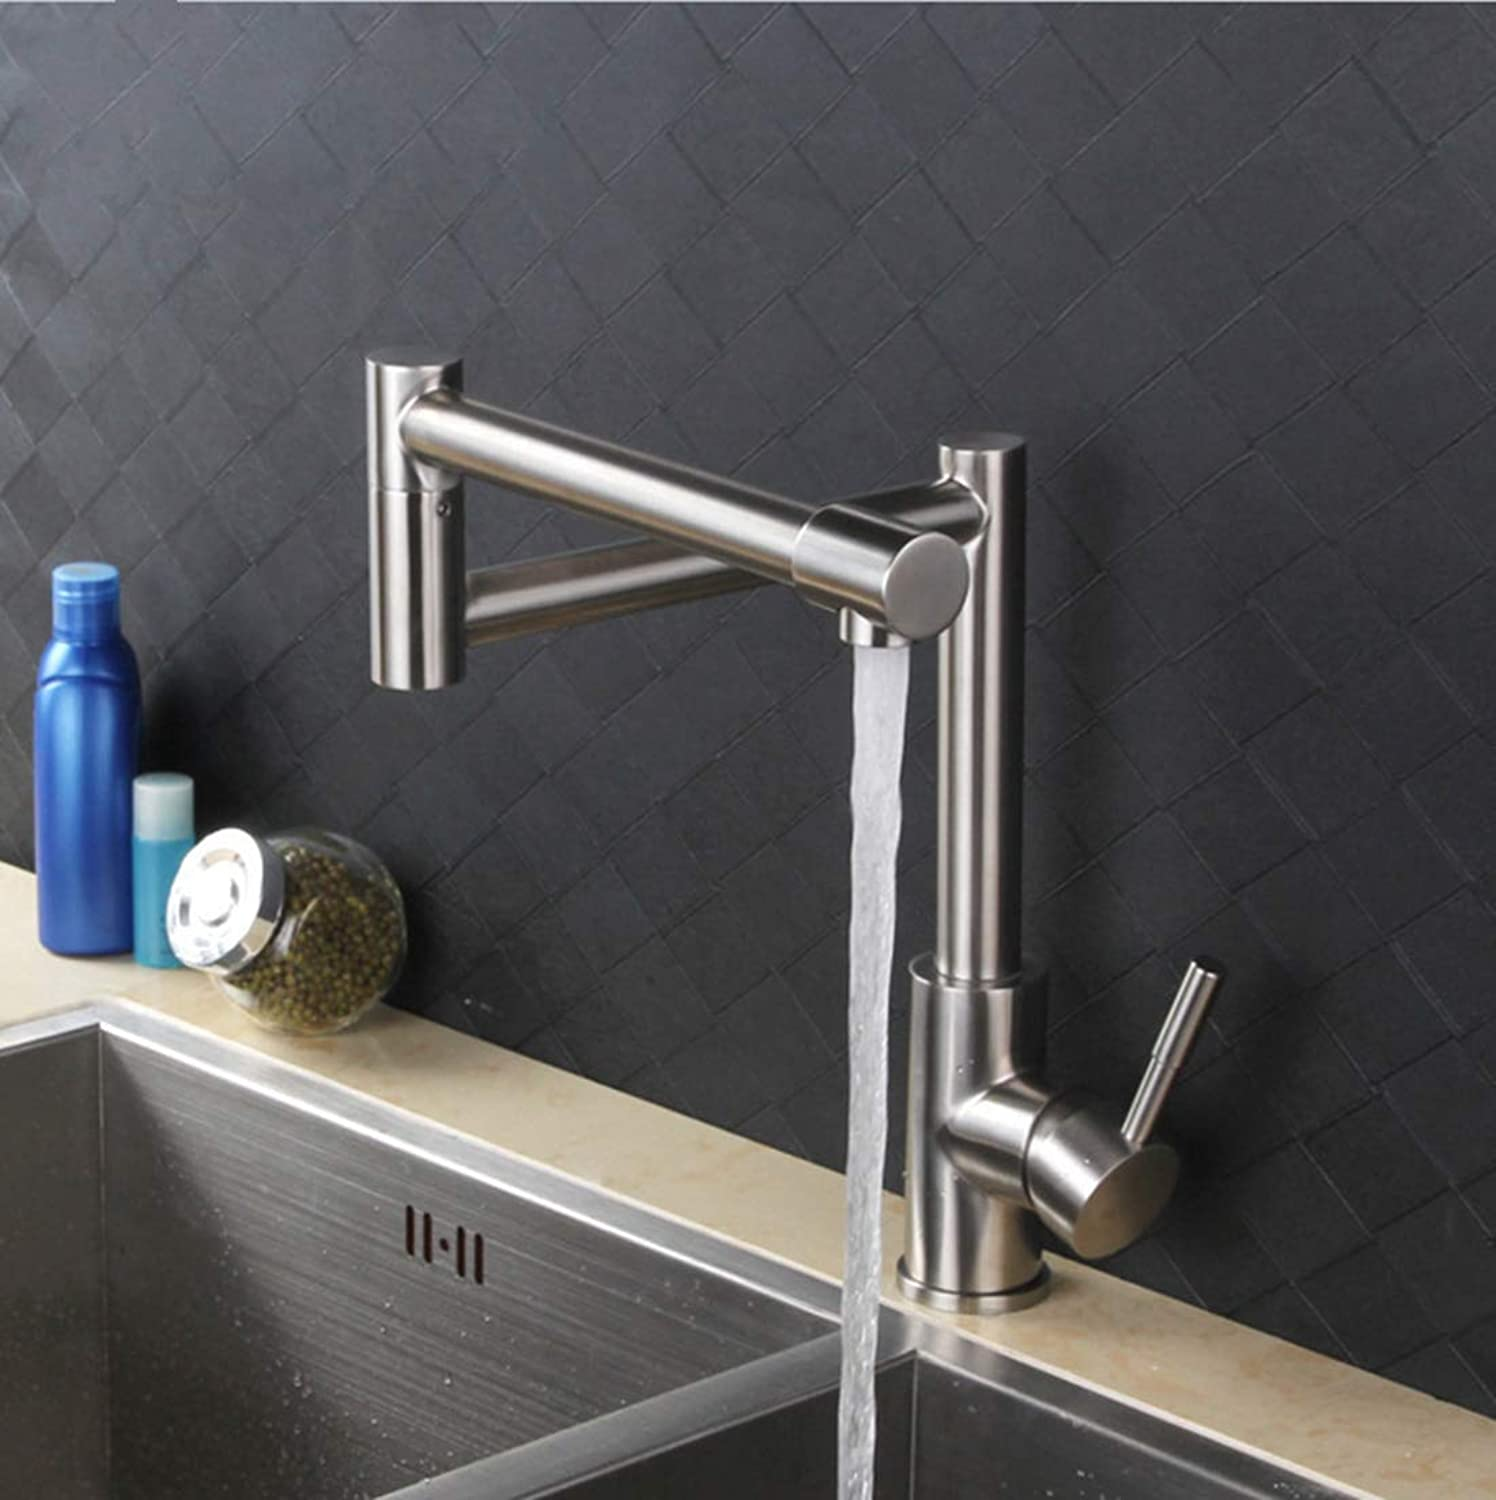 DONGCY Pot Filler Folding Kitchen Faucet Sink Faucets stainless steel